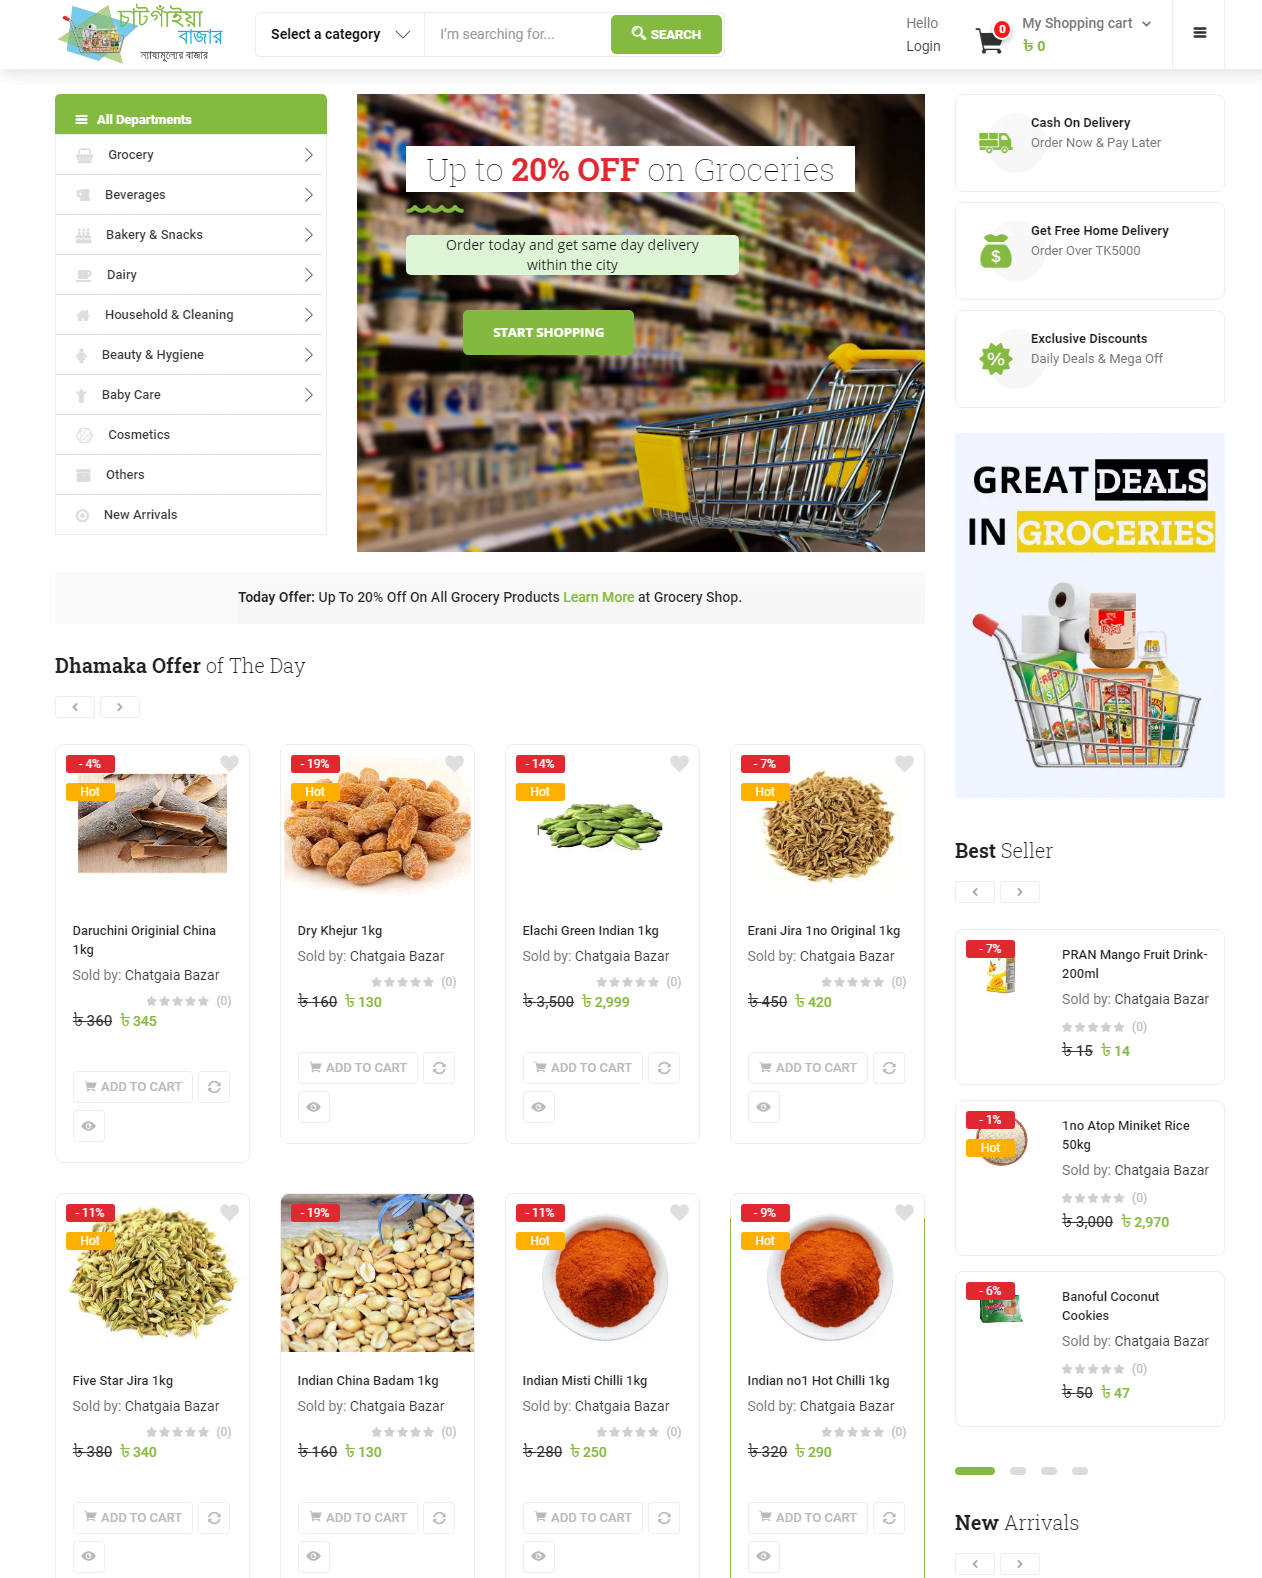 Online Grocery Shopping in Chattogram With Home Delivery - Chatgaia Bazar (2)